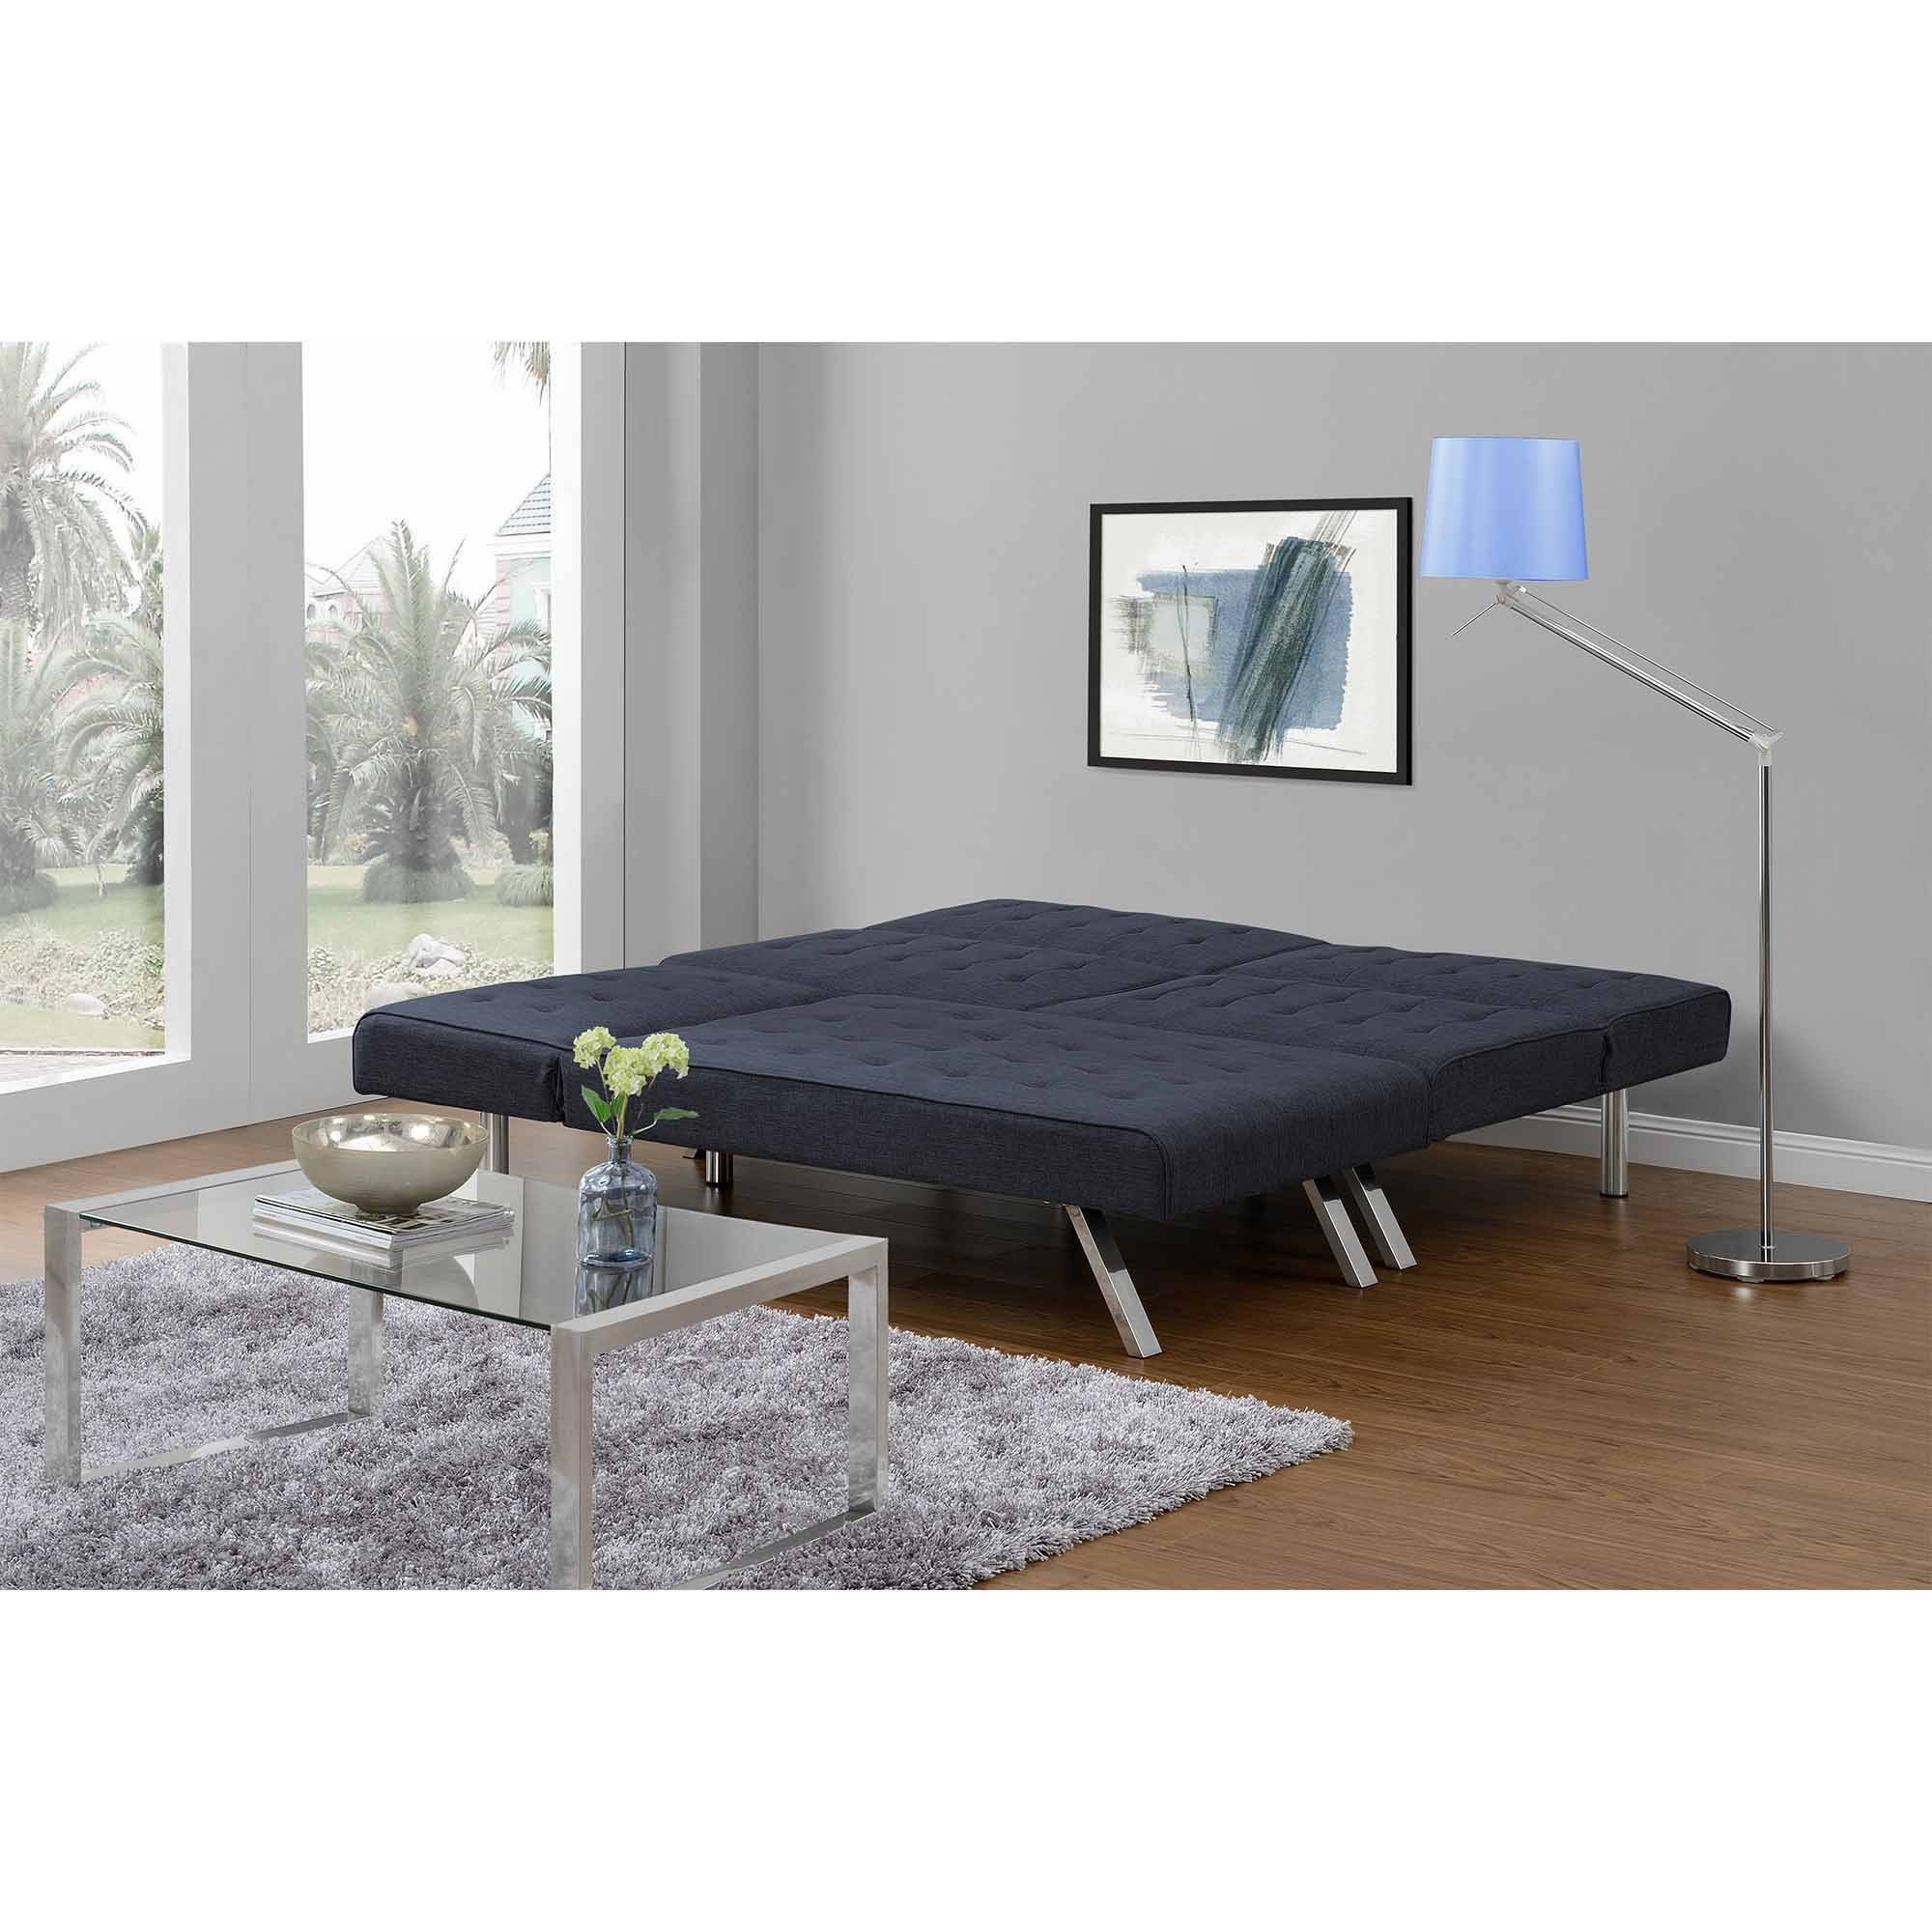 Dhp Emily Futon Chaise Lounger, Multiple Colors – Walmart Regarding Newest Emily Futon Chaise Loungers (View 4 of 15)